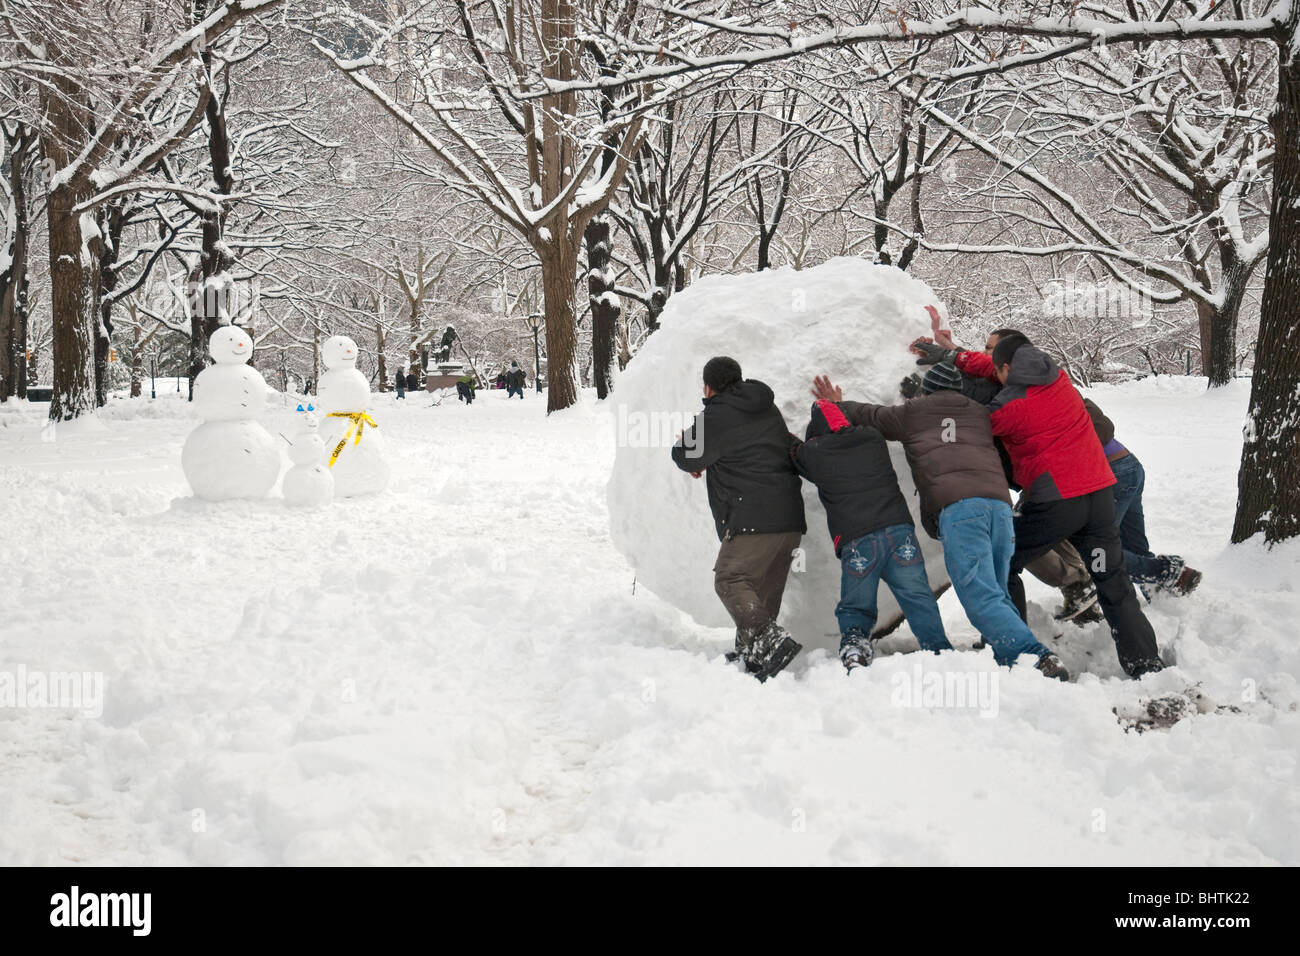 People Building A Snowman In Central Park During Record